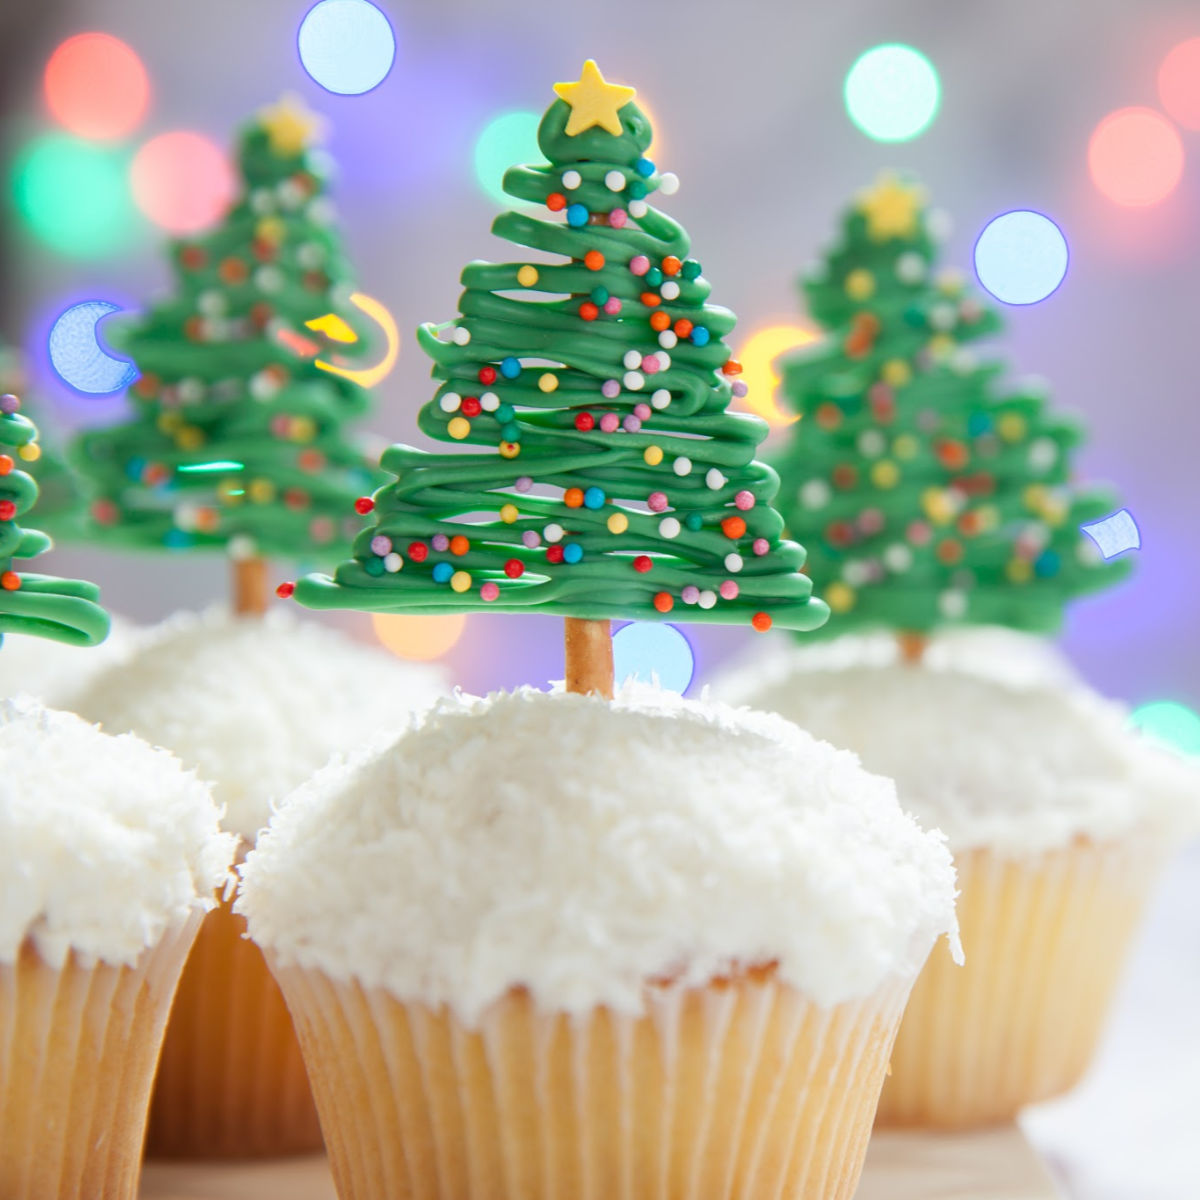 White cupcakes with edible Christmas tree decor on top.